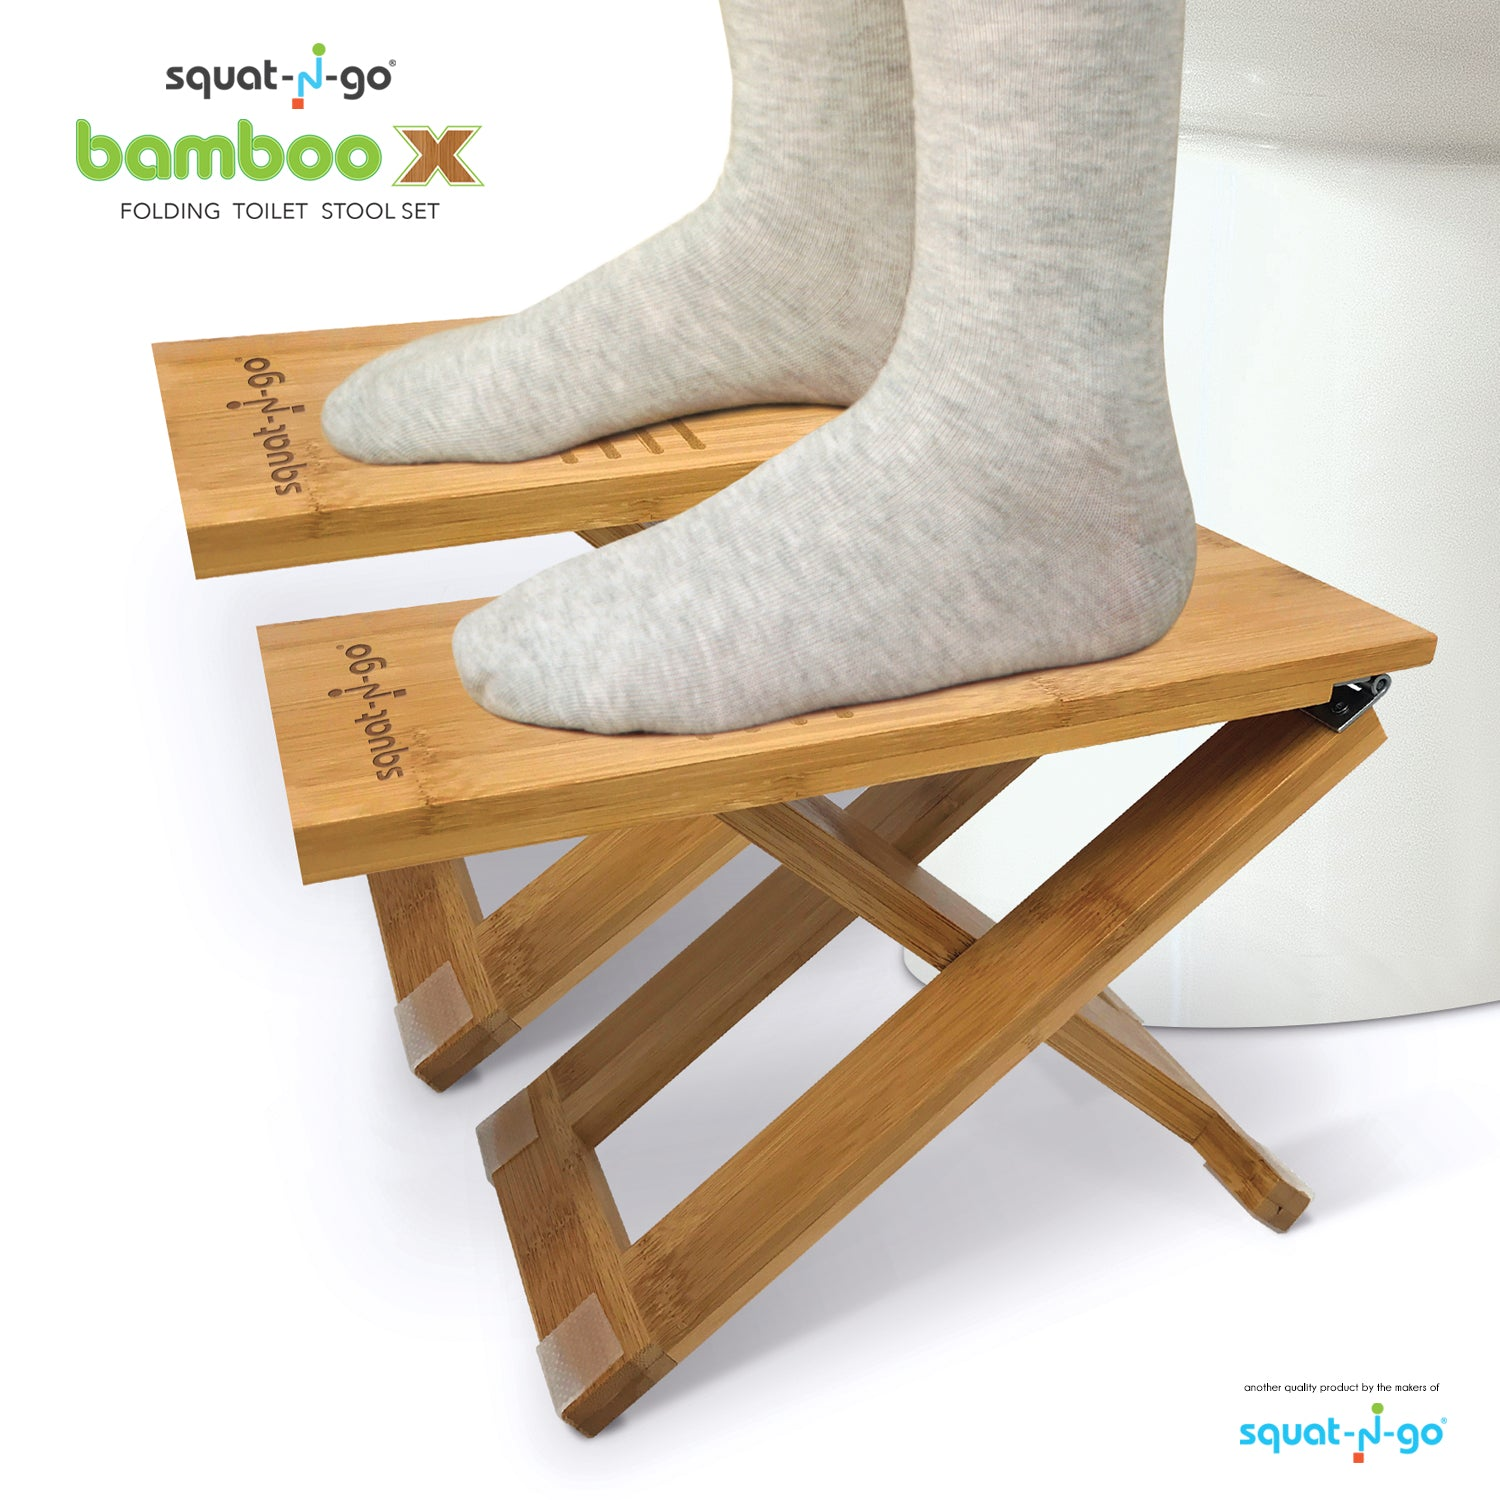 Prime Bamboo X Toilet Stool Set Comes With Free Travel Bag Cjindustries Chair Design For Home Cjindustriesco